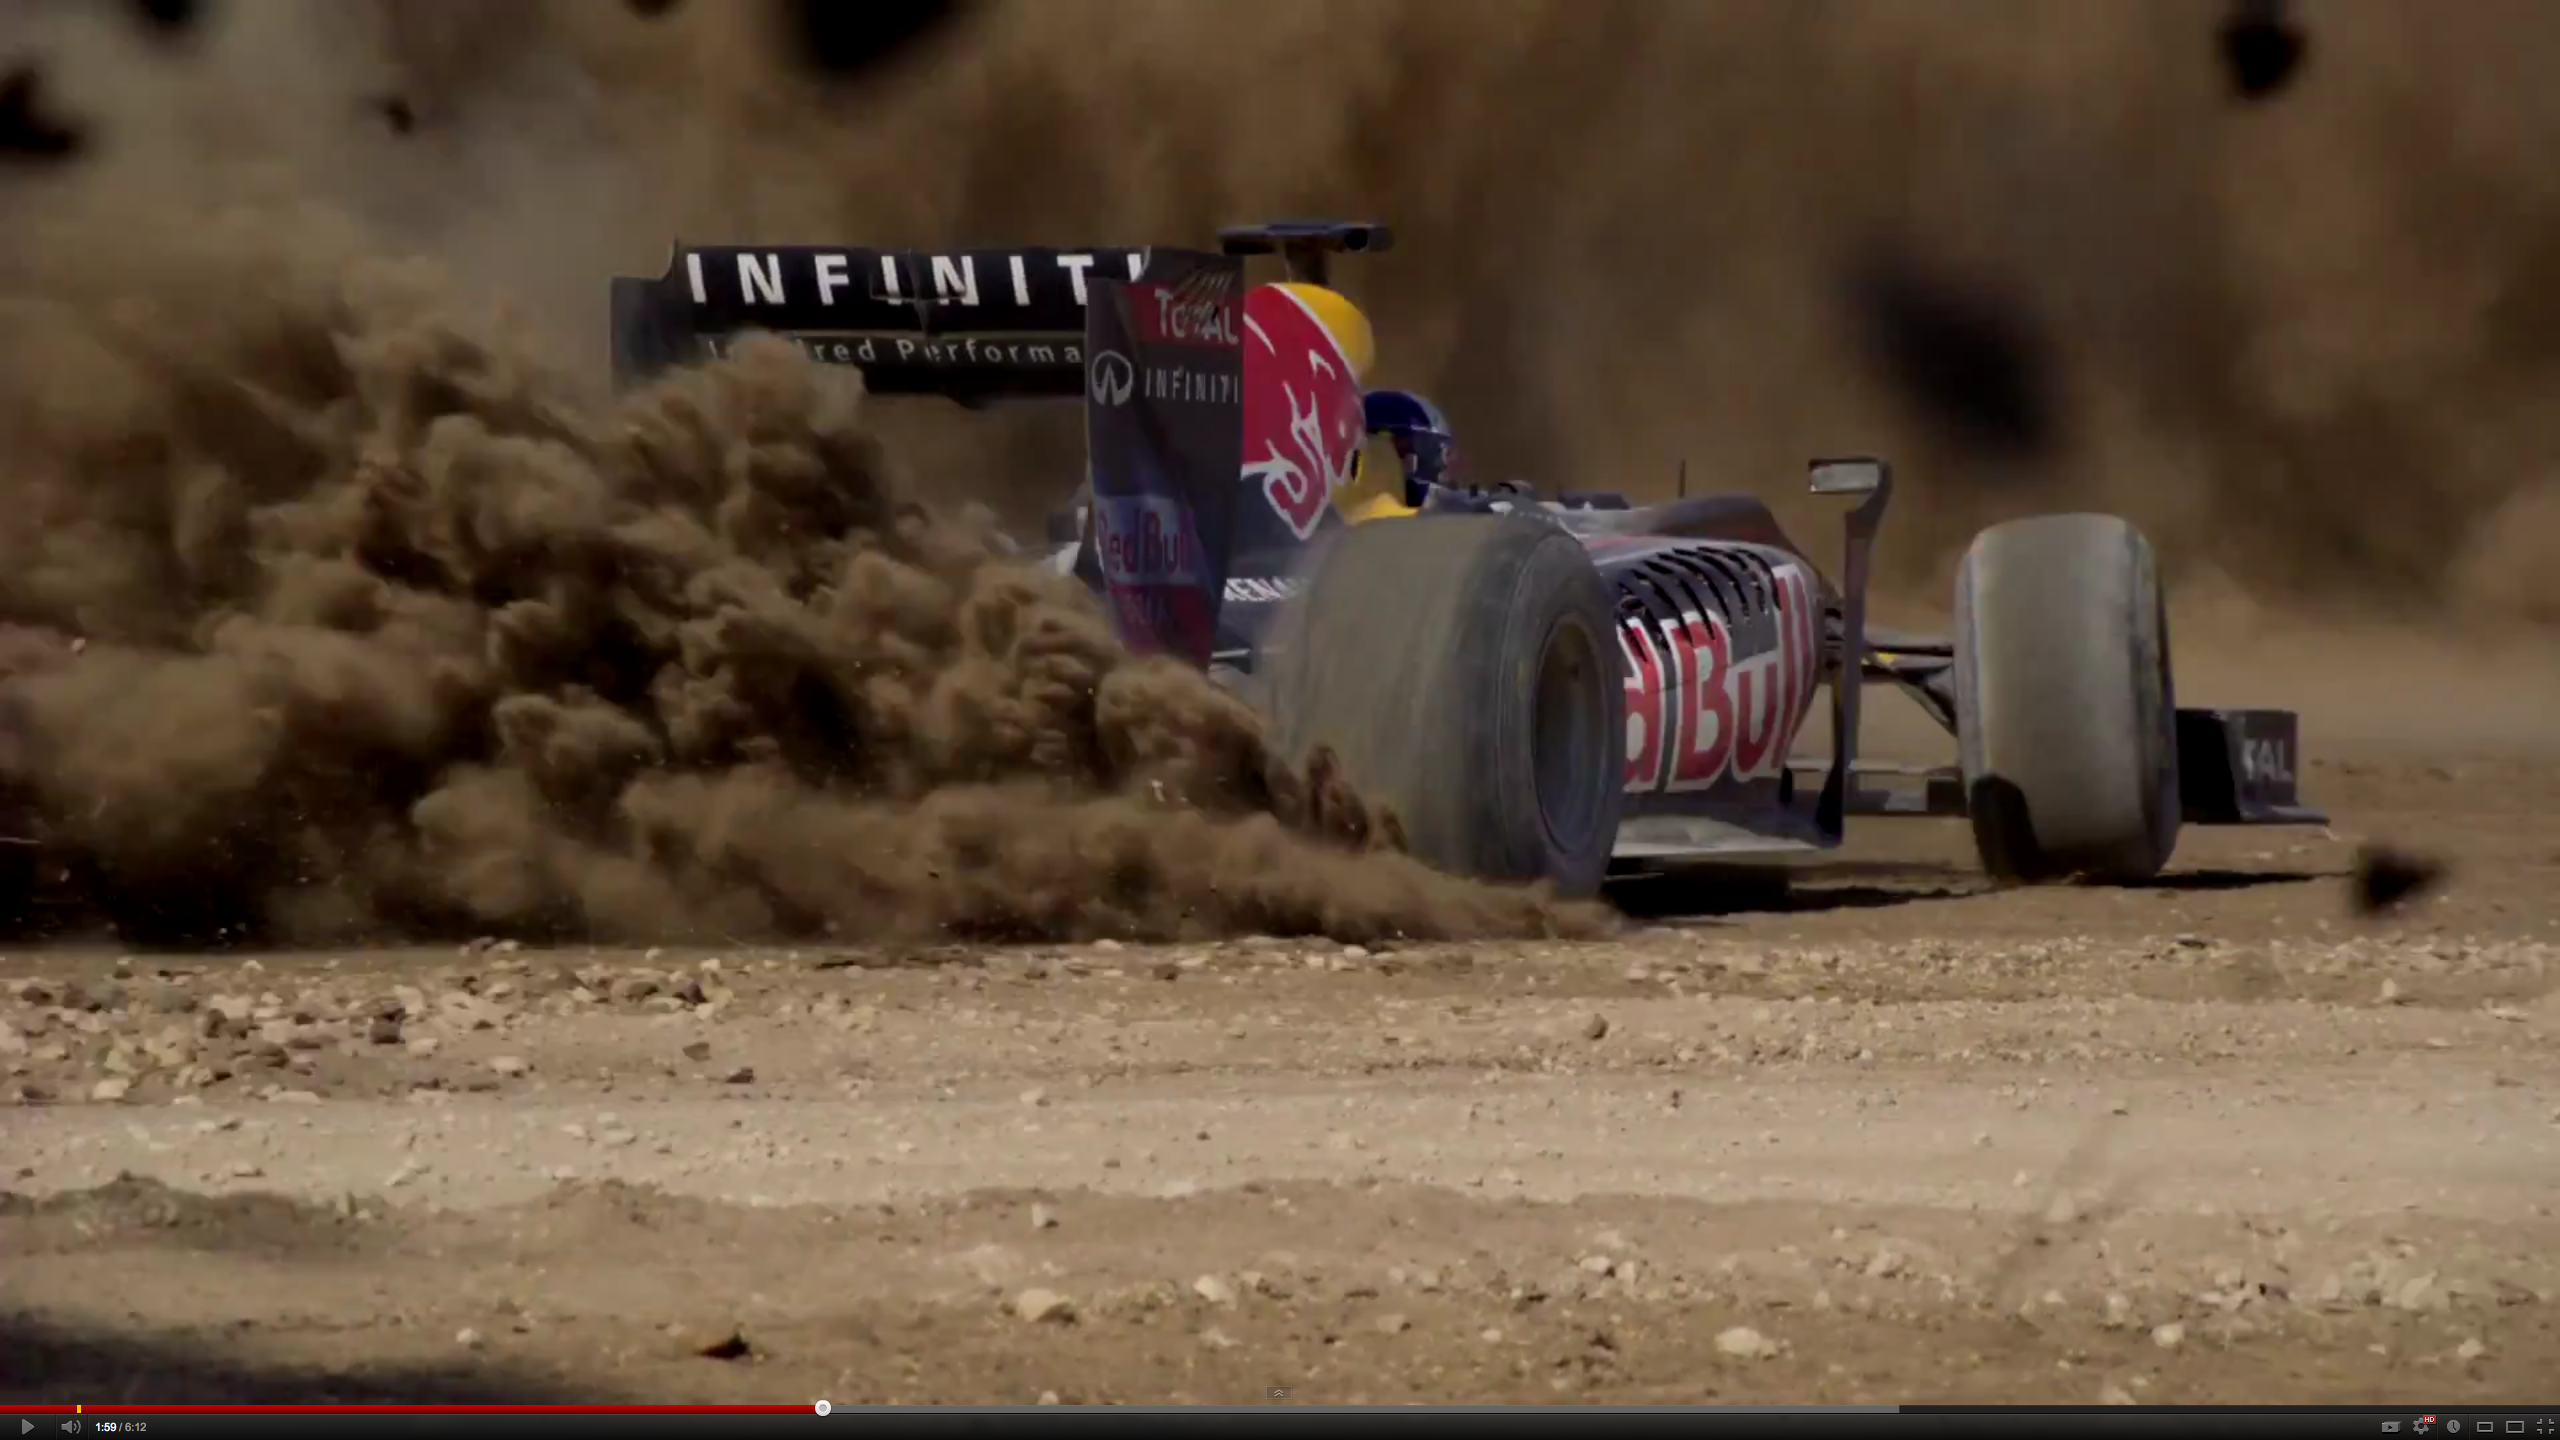 Redbull taking it to the dirt!